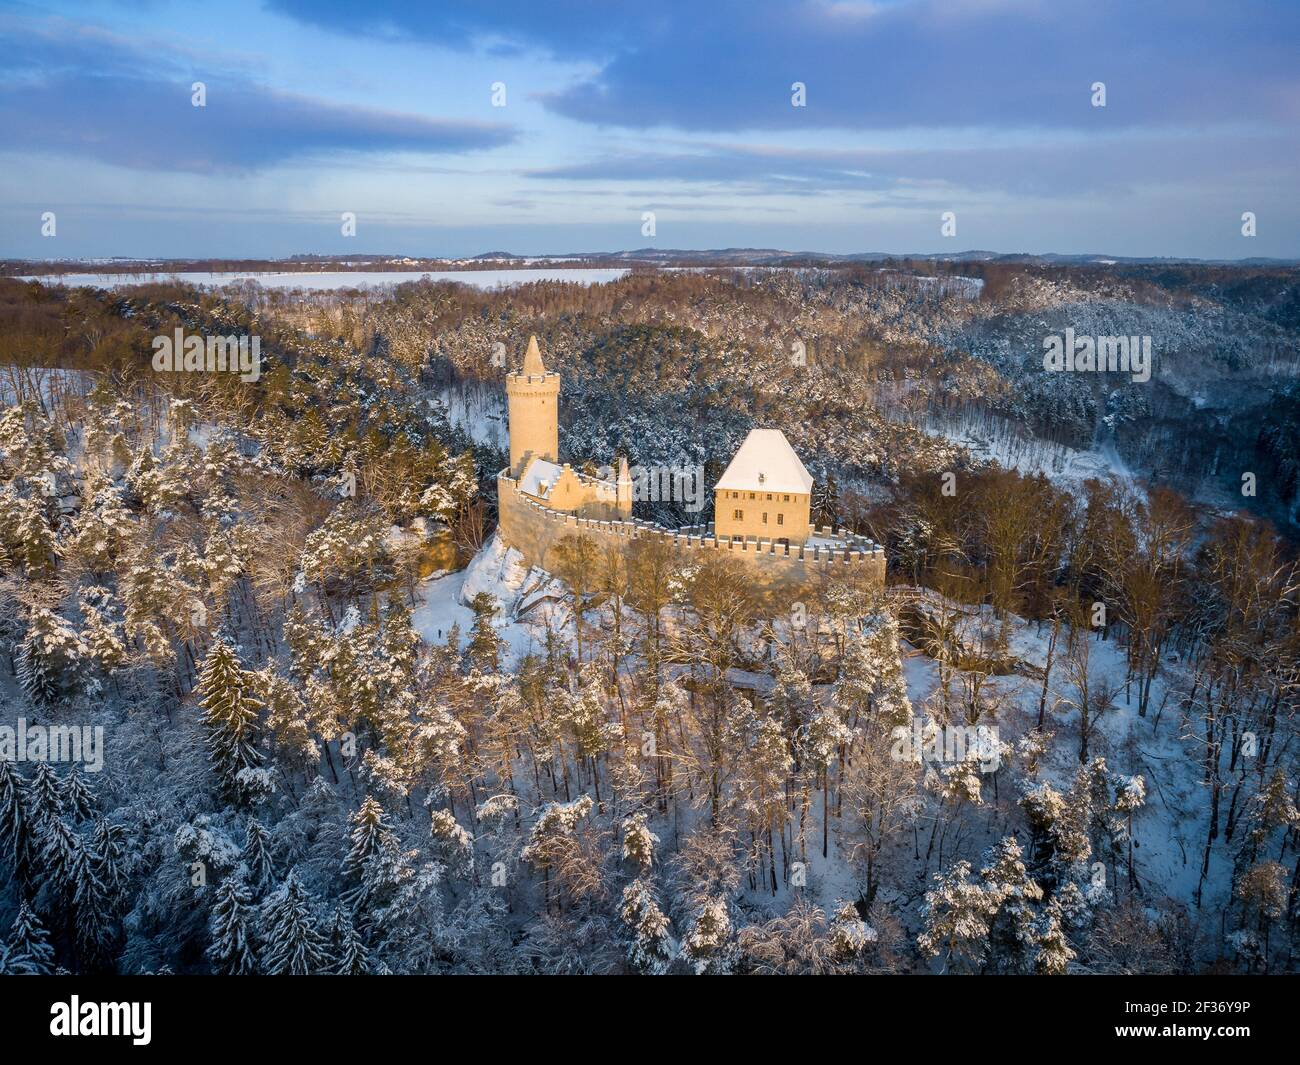 Aerial view of medieval castle Kokorin in winter during sunrise. National park Kokorinsko nearby Prague in Czech Republic. Central Europe. Stock Photo